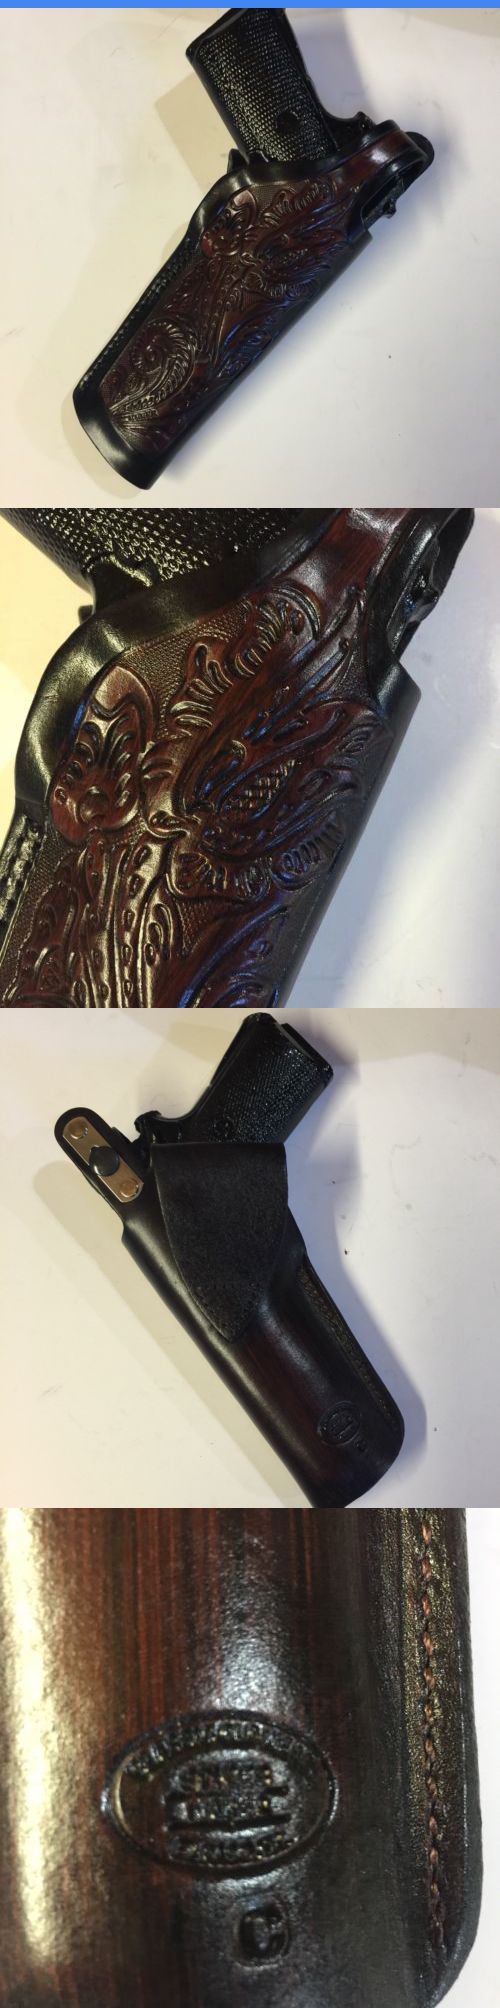 Holsters 177885: Colt 1911 45 Model,Remington,Ria,Springfield, 5 Barrel, Kimber Leather Holster BUY IT NOW ONLY: $39.99